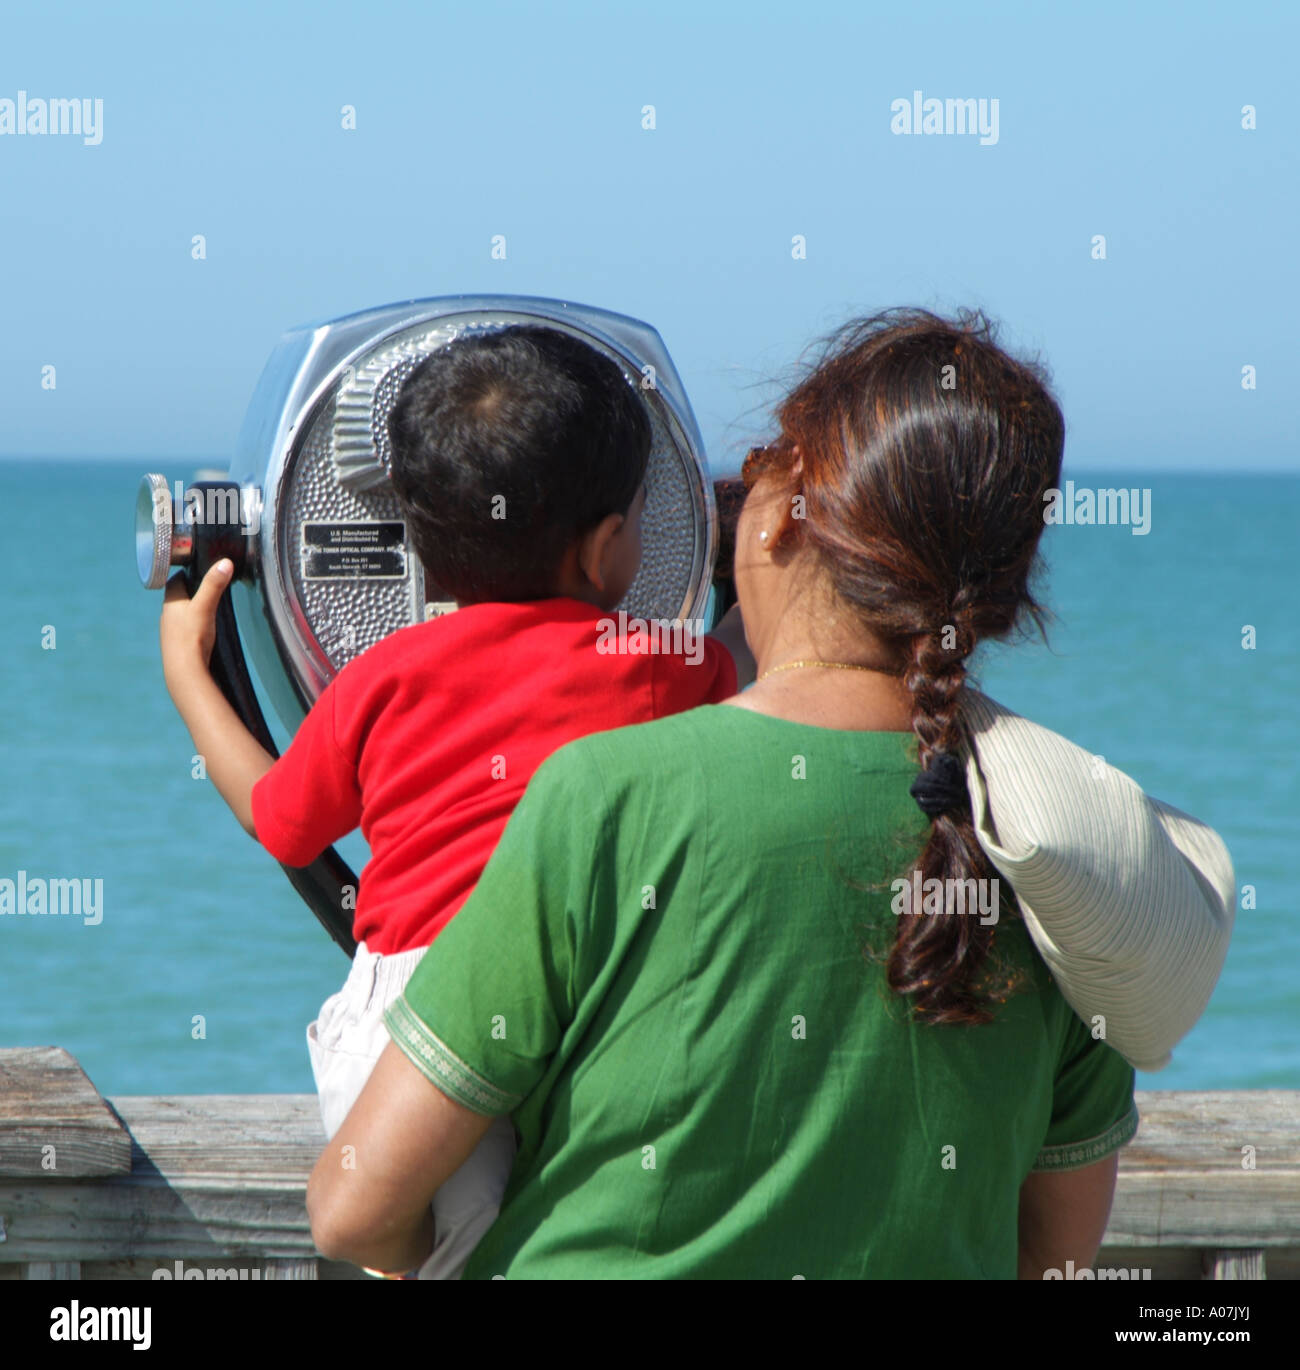 Clearwater Beach.Pier 60 Asian femme et enfant regardez vers la mer.plage longue machine binoculaire. Photo Stock